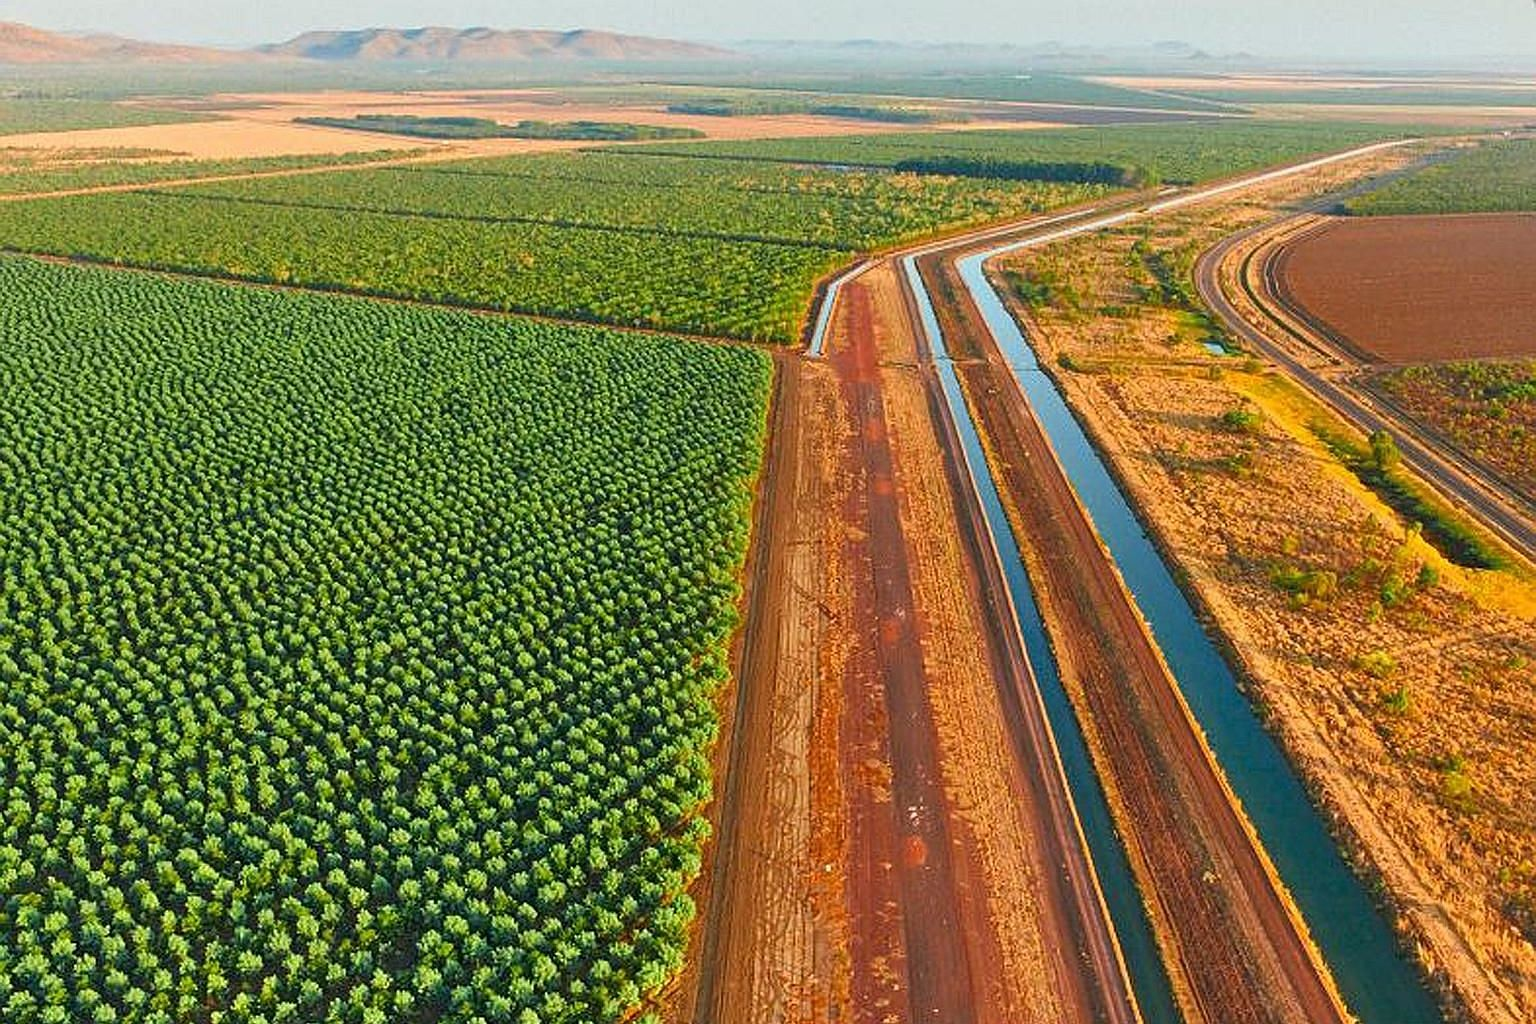 TFS plans to raise sandalwood output thirtyfold to 10,000 tonnes of timber a year from its 12,000ha of plantations in northern Australia, including a large plantation area in Kununurra (above).